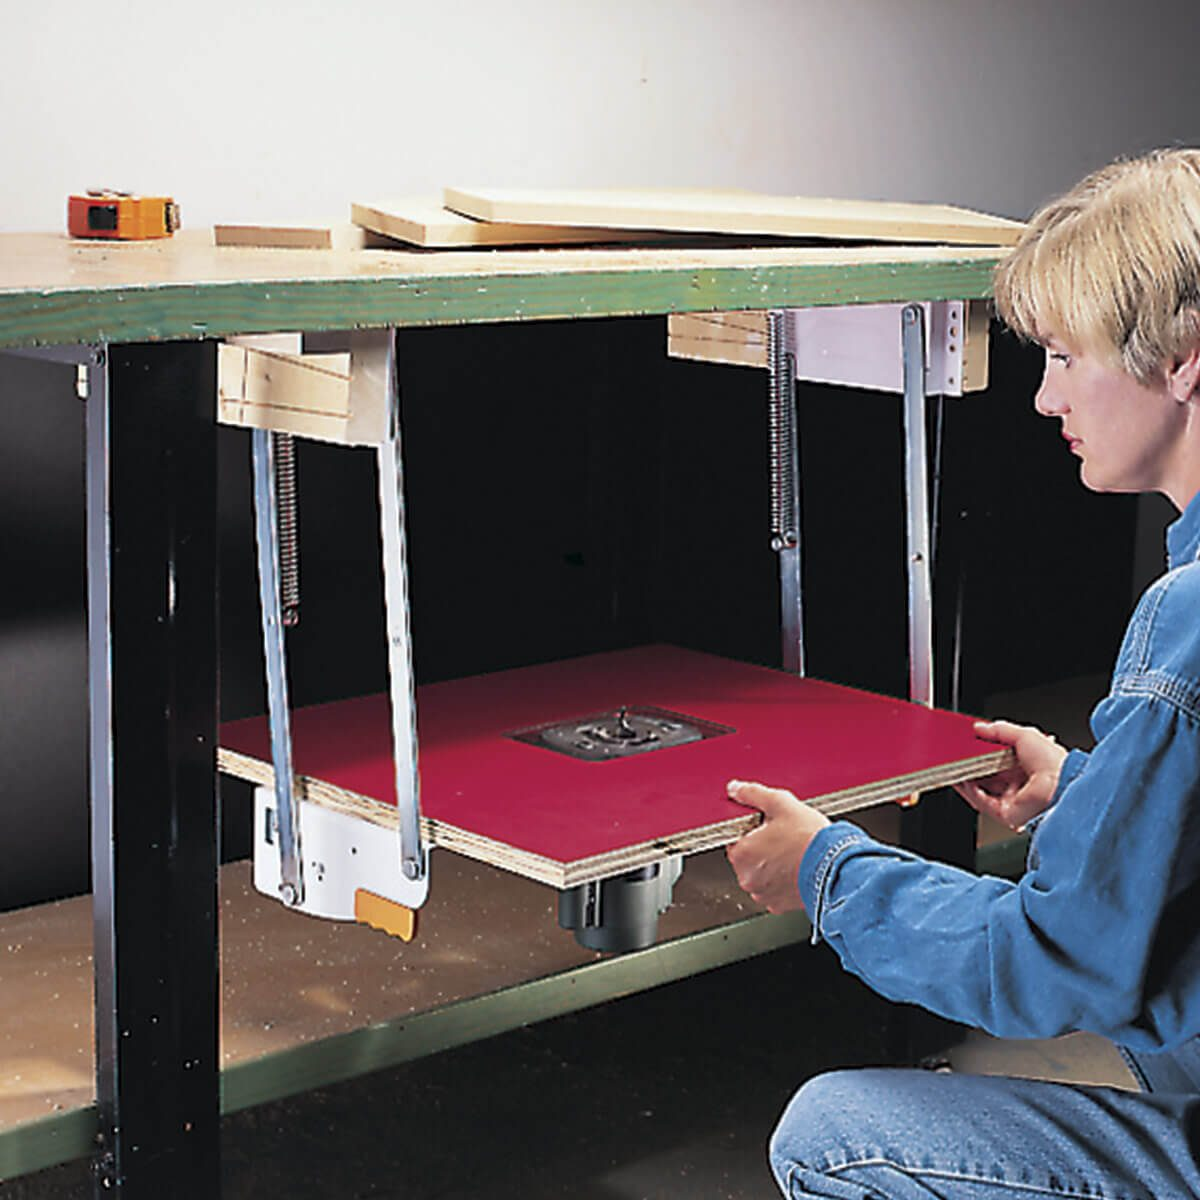 pull-out router table put away